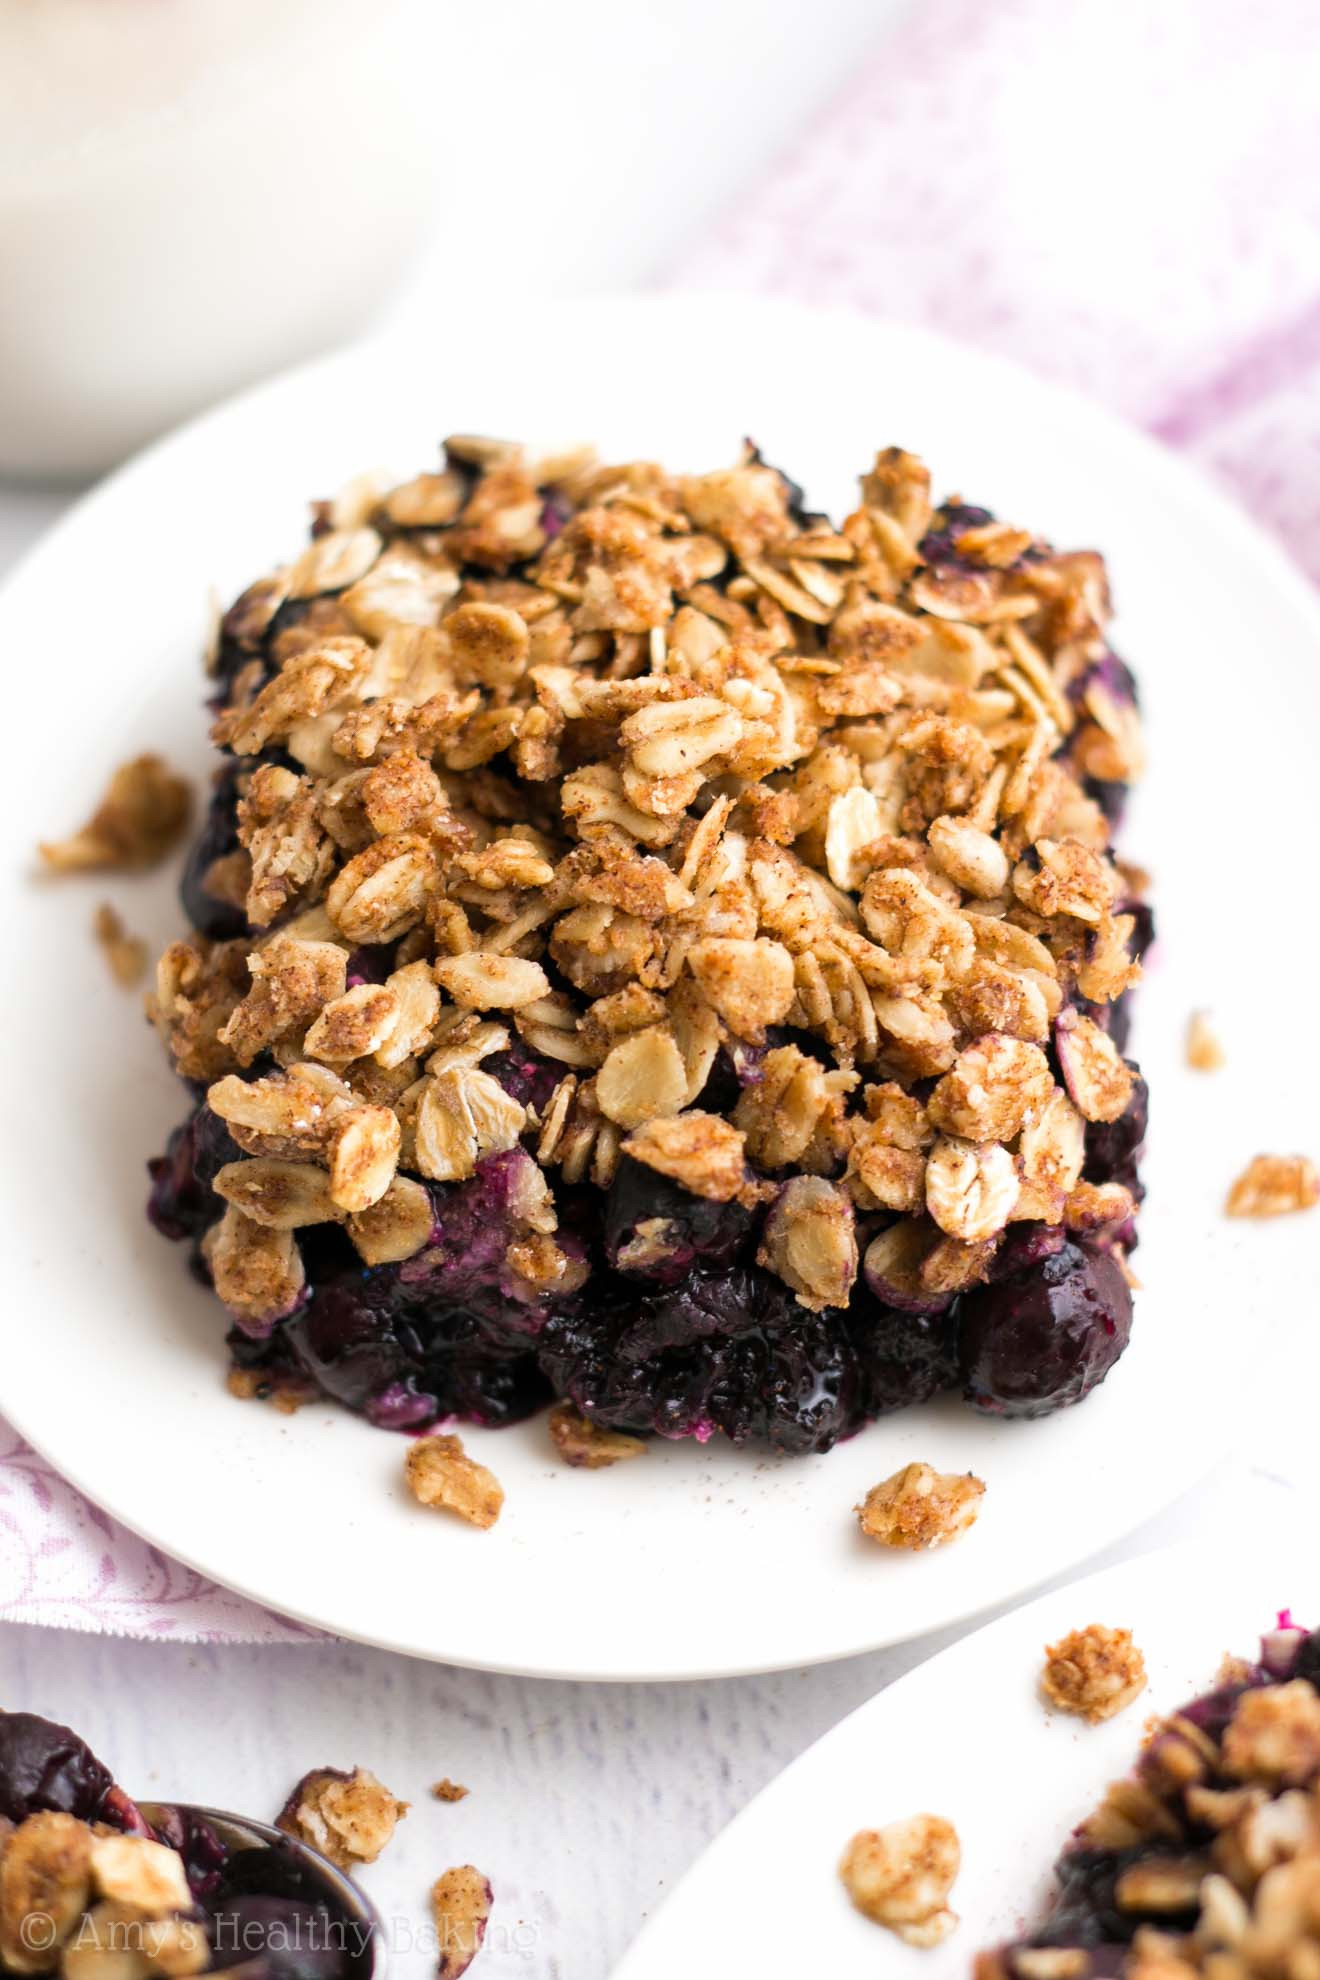 Healthy Blueberry Dessert Recipes  The Ultimate Healthy Blueberry Crumble Recipe Video